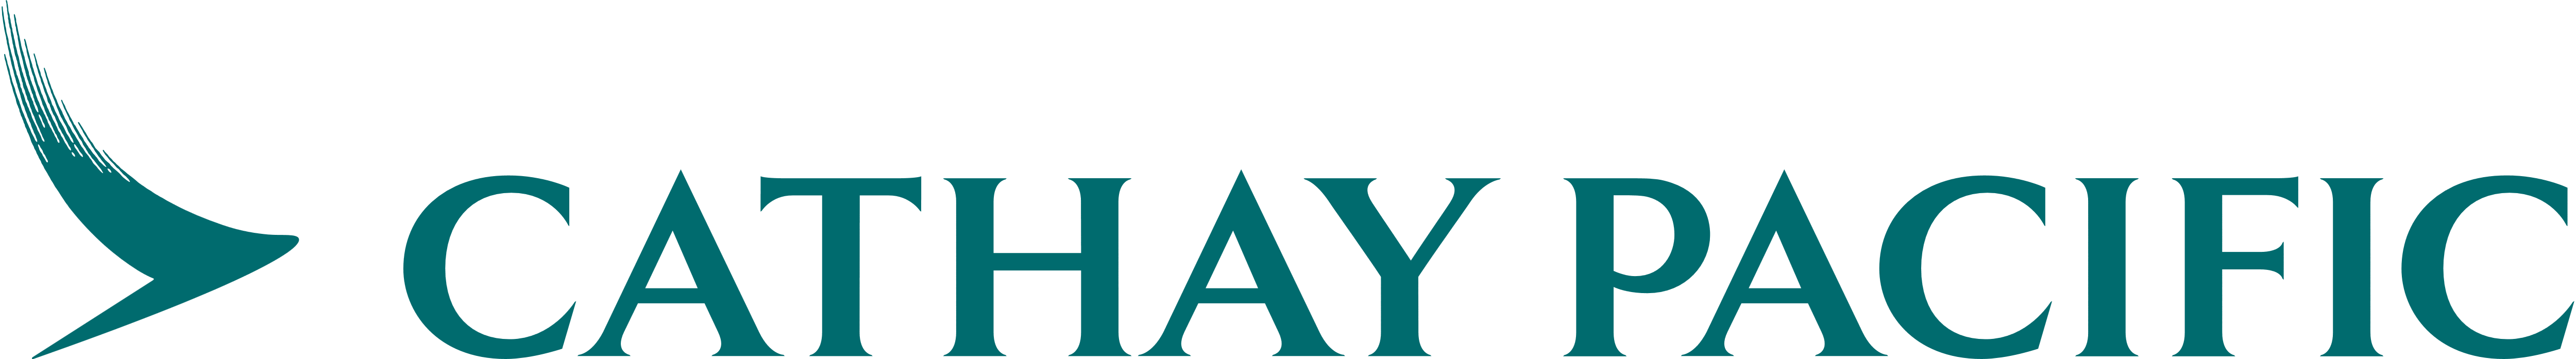 https://www.augmentcg.com/wp-content/uploads/2019/08/Cathay_Pacific_logo_logotype_emblem.png